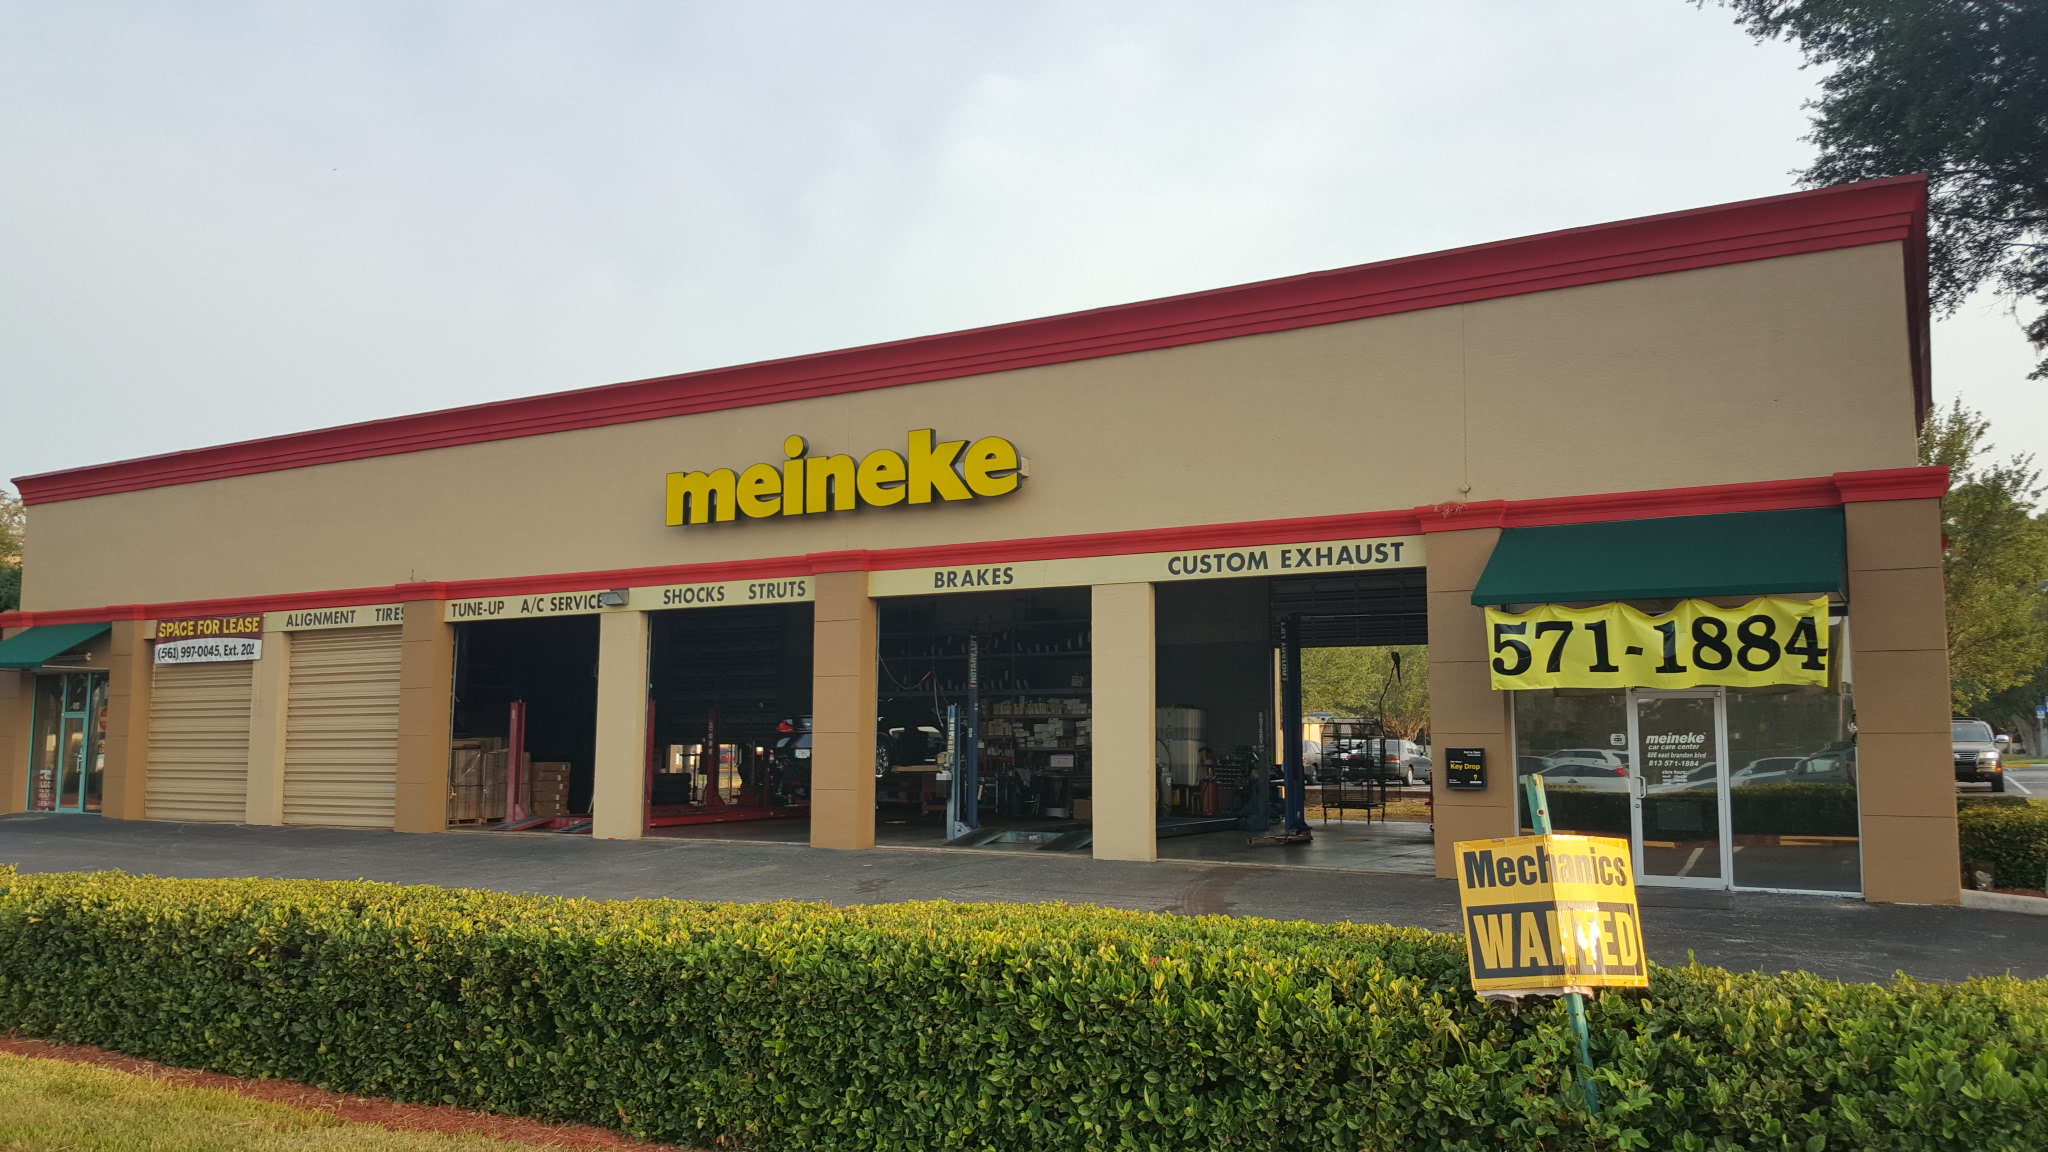 Meineke Oil Change >> Meineke Car Care Center E Brandon Blvd Brandon Fl 33511